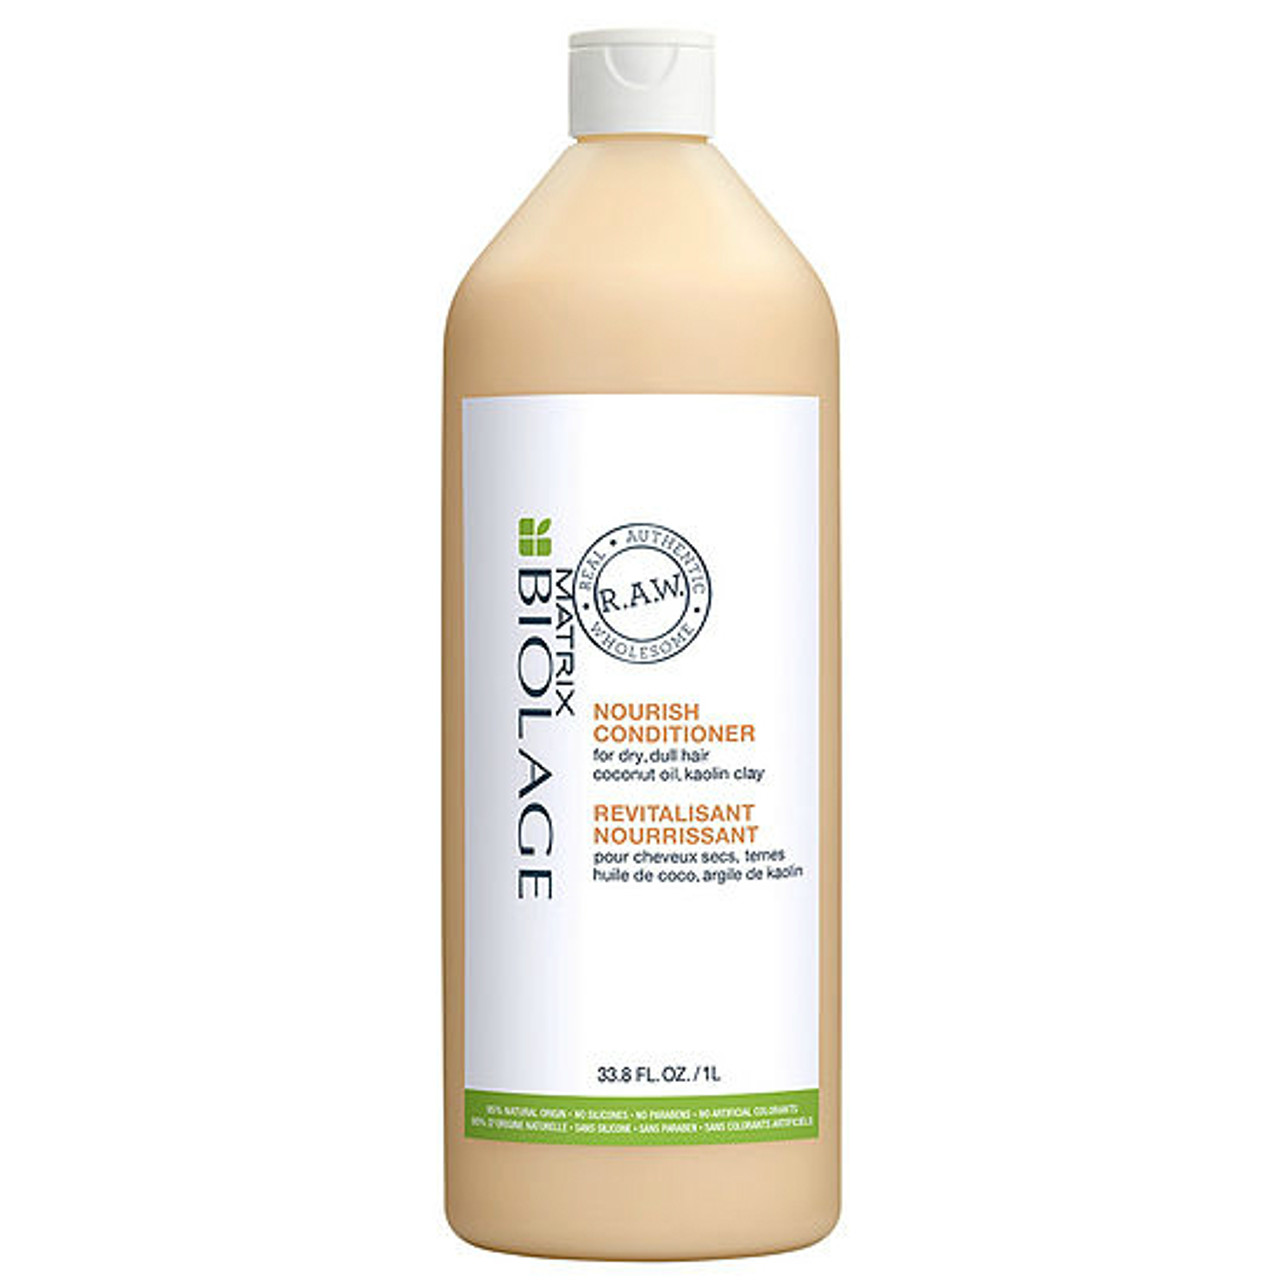 Biolage RAW Nourish Conditioner Liter